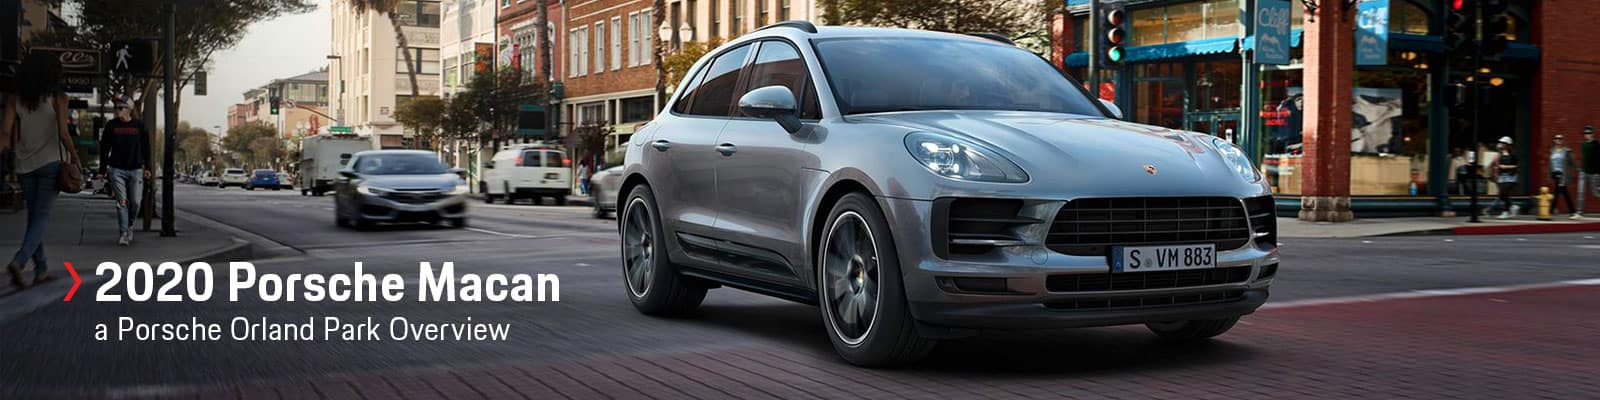 2020 Porsche Macan Model Overview at Porsche Orland Park